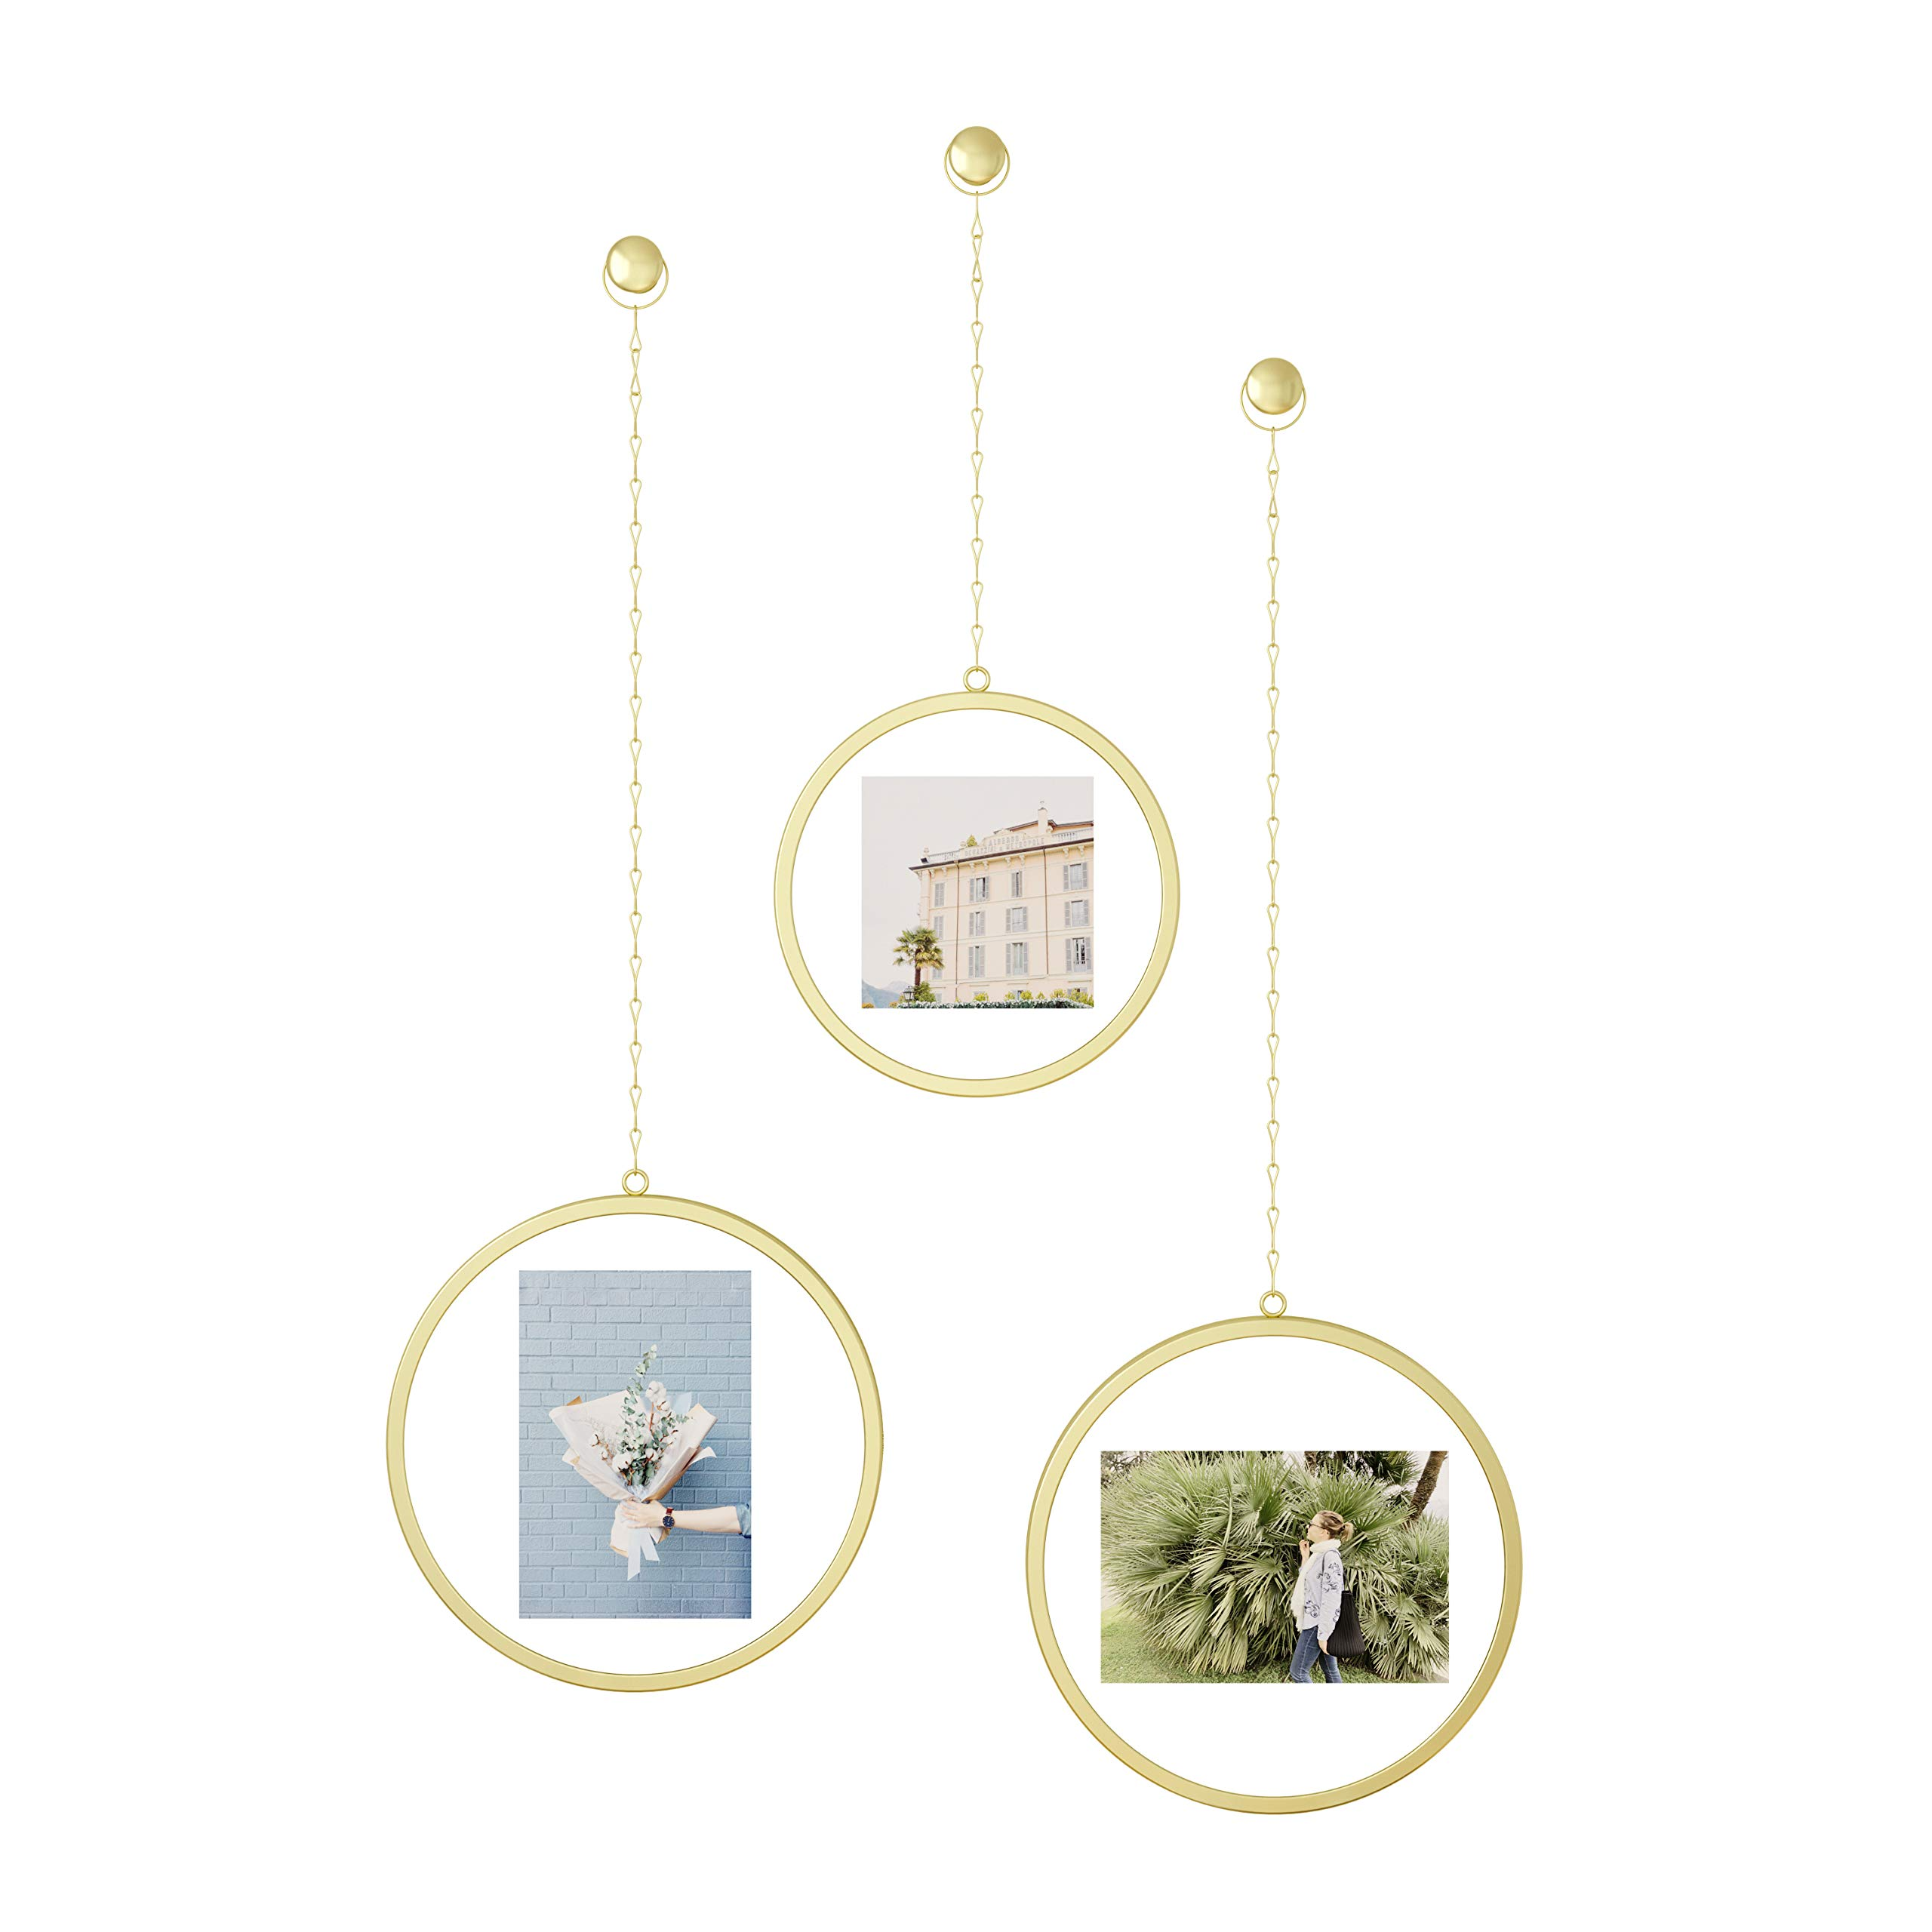 Umbra Fotochain Circular Photo Display, Set of 3, Matte Brass by Umbra